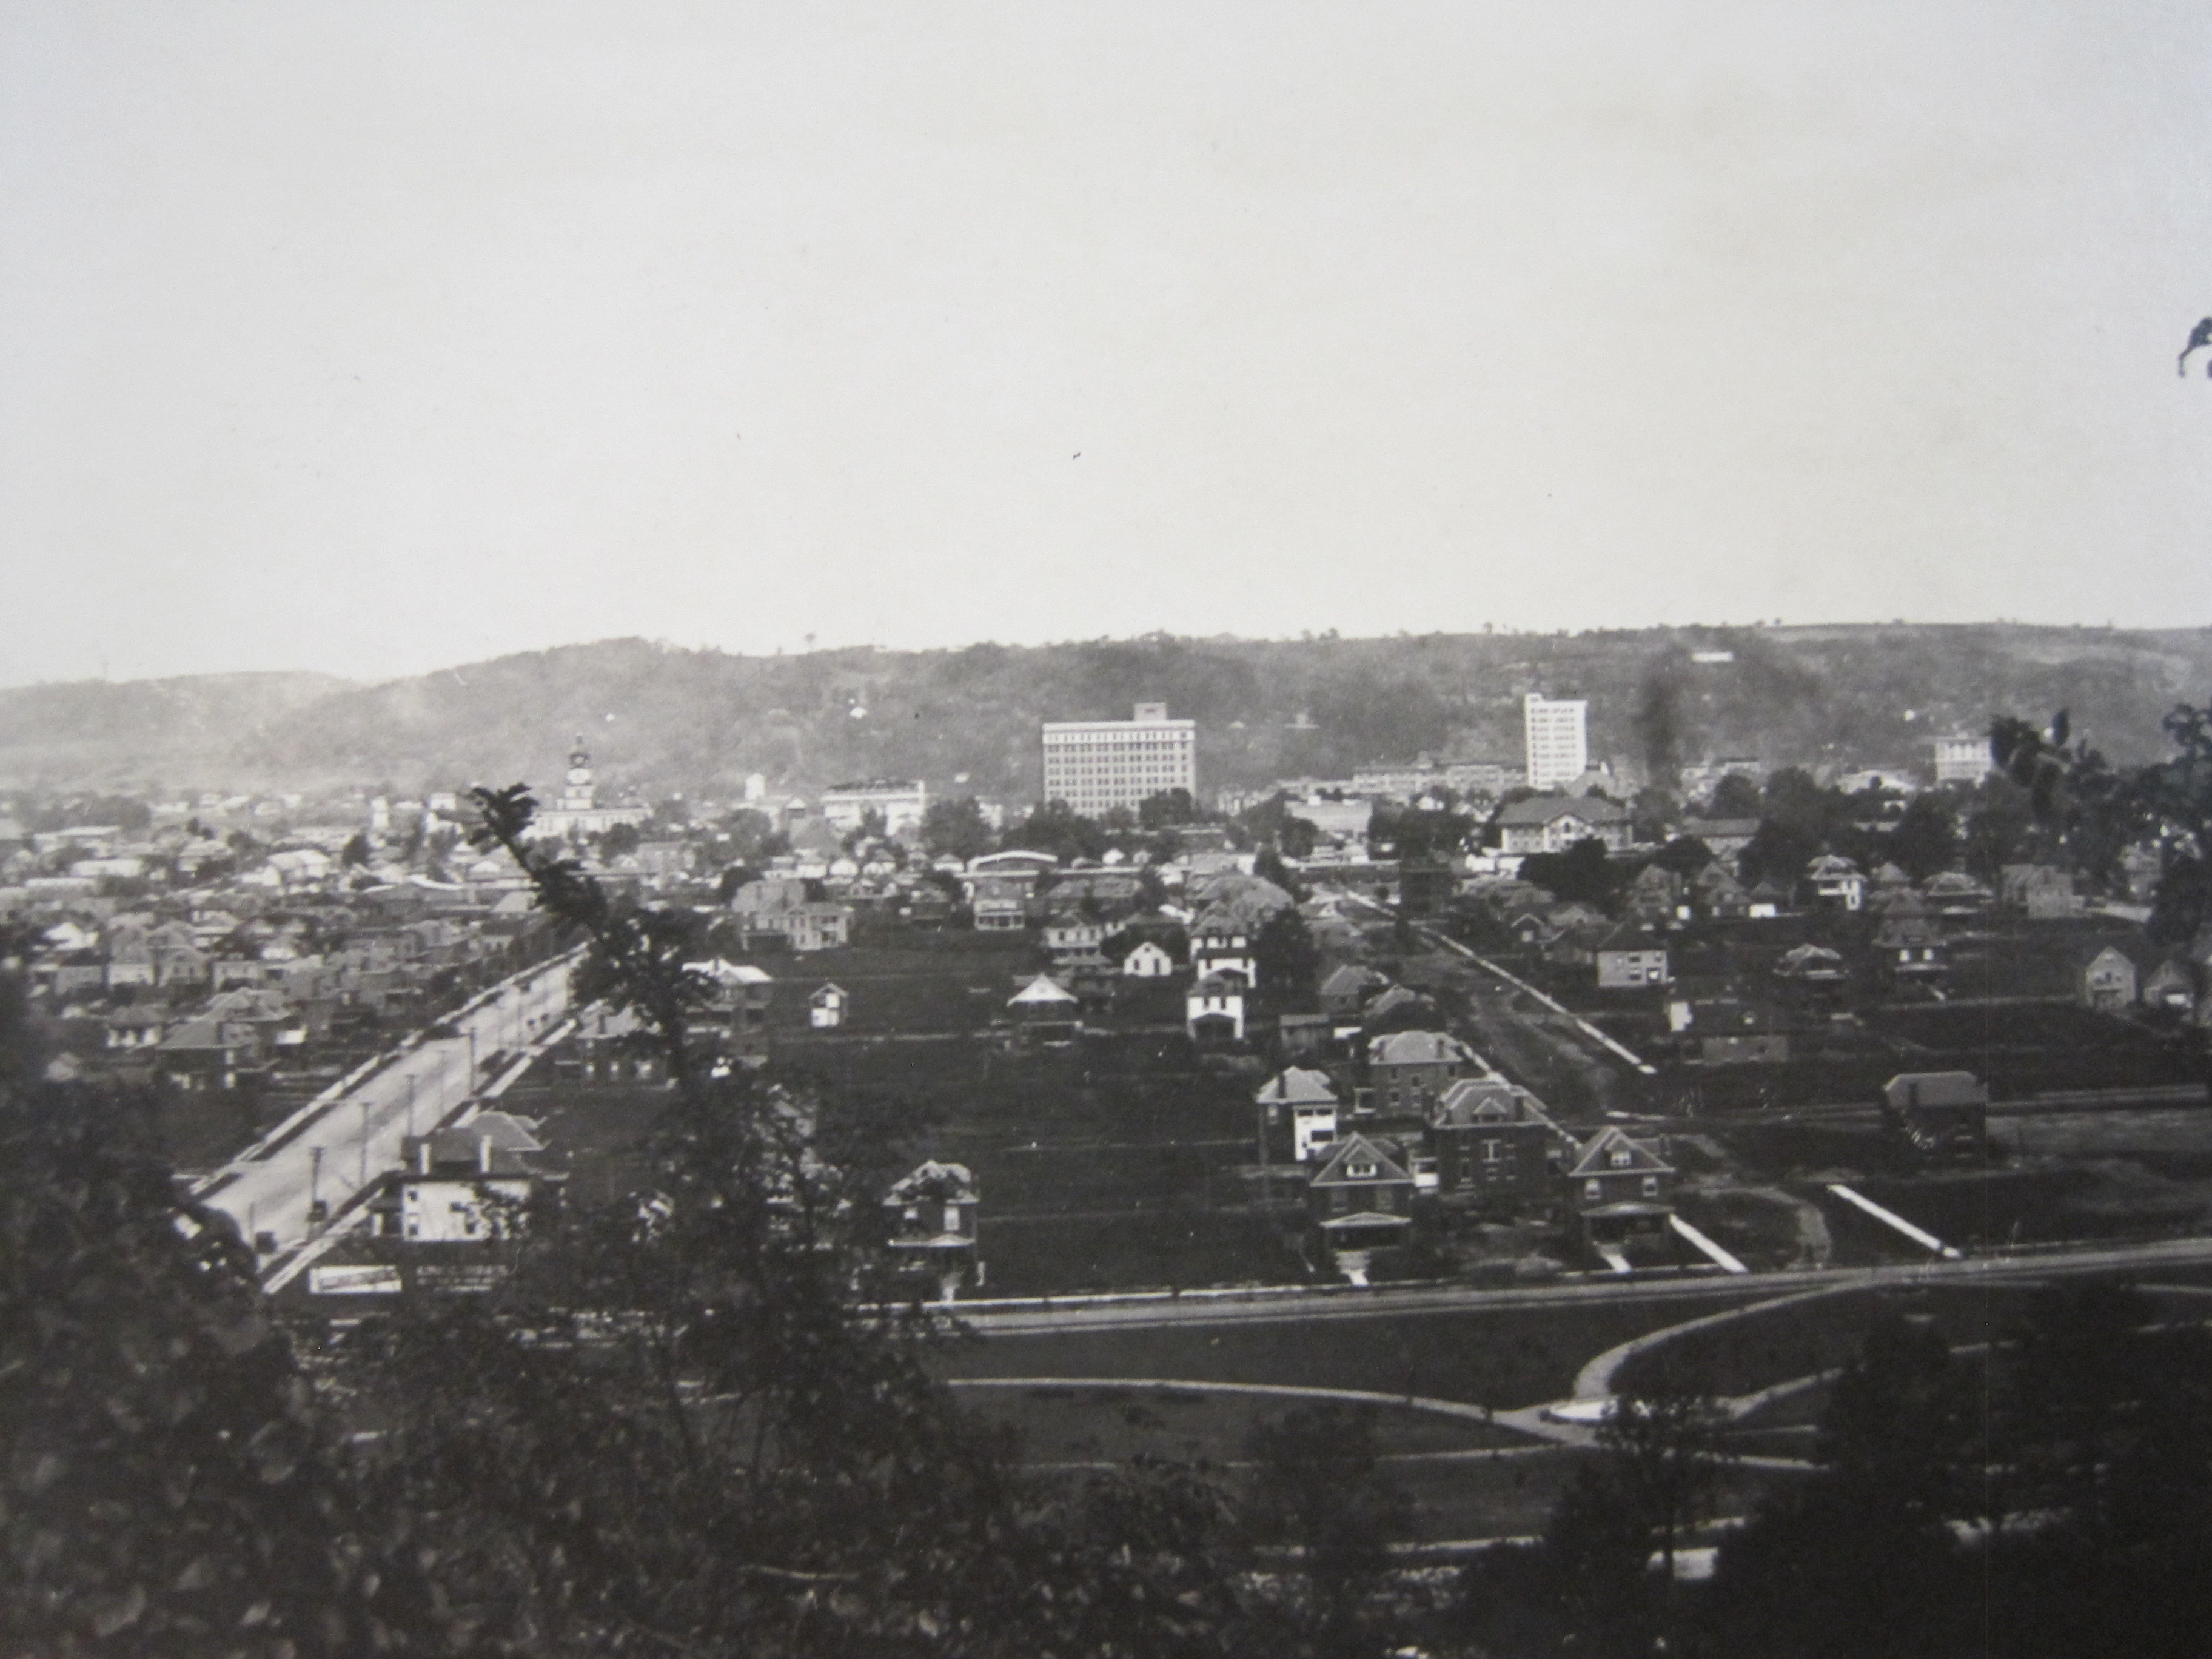 Birdseye view of Ritter Park, with view of 8th Street to the left, circa 1913.